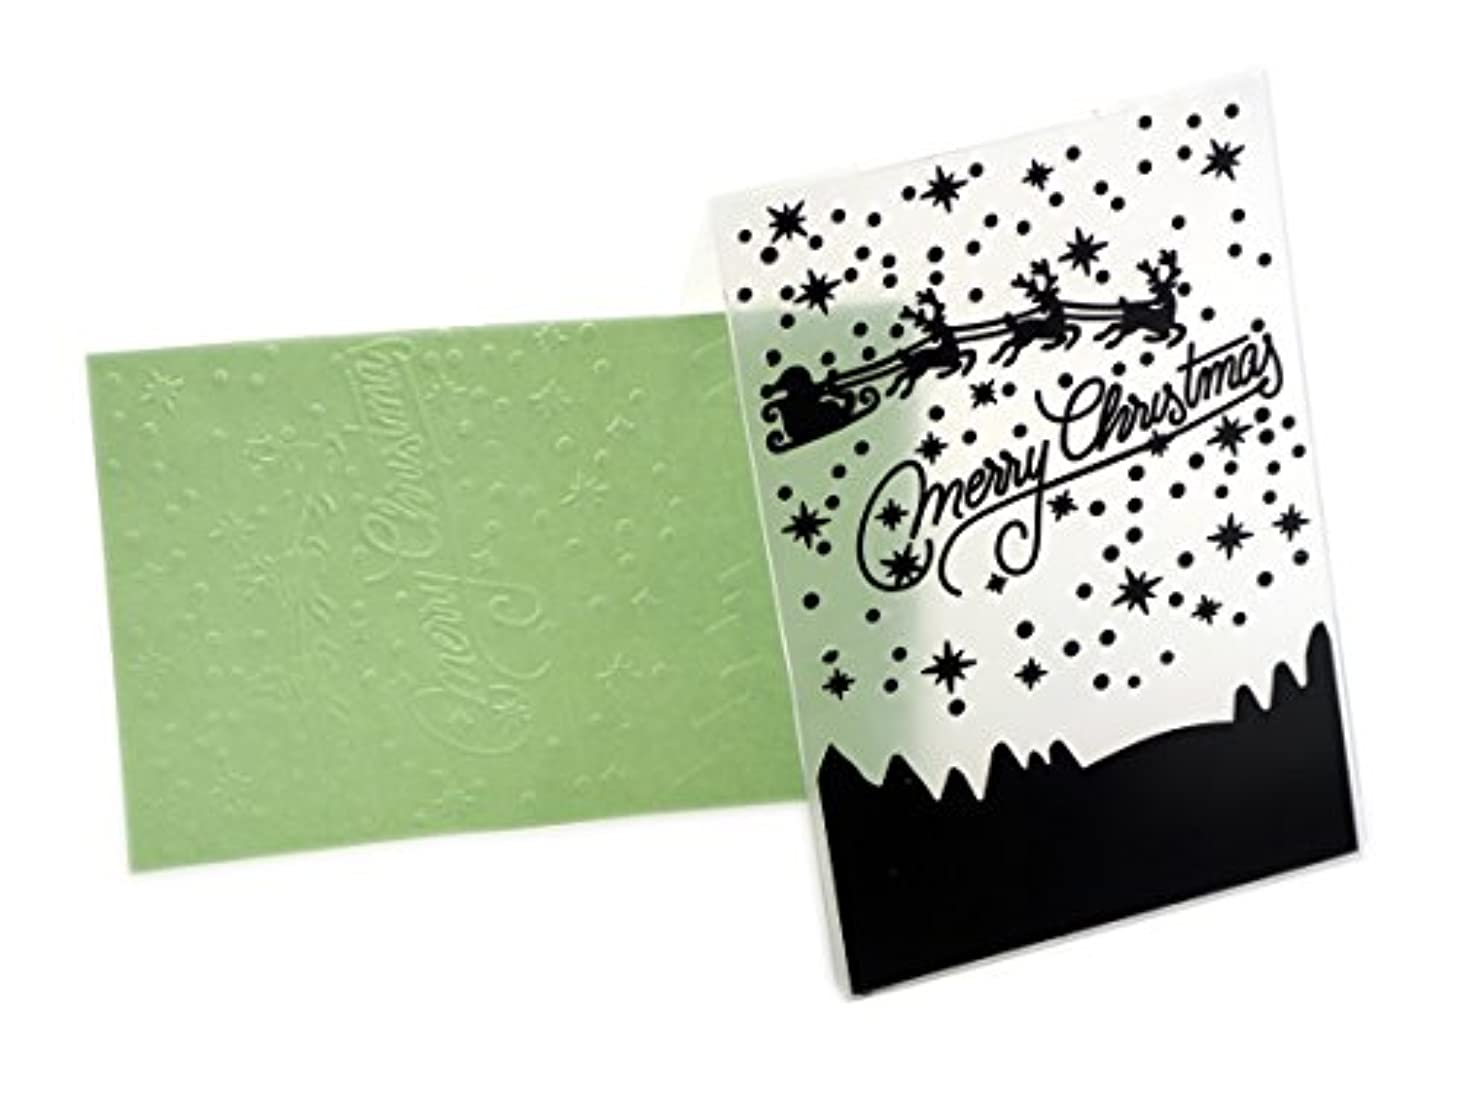 Creationtop Lines Plastic Embossing Folder for DIY Scrapbooking Card Making Supplies Embossing (Merry Christmas)